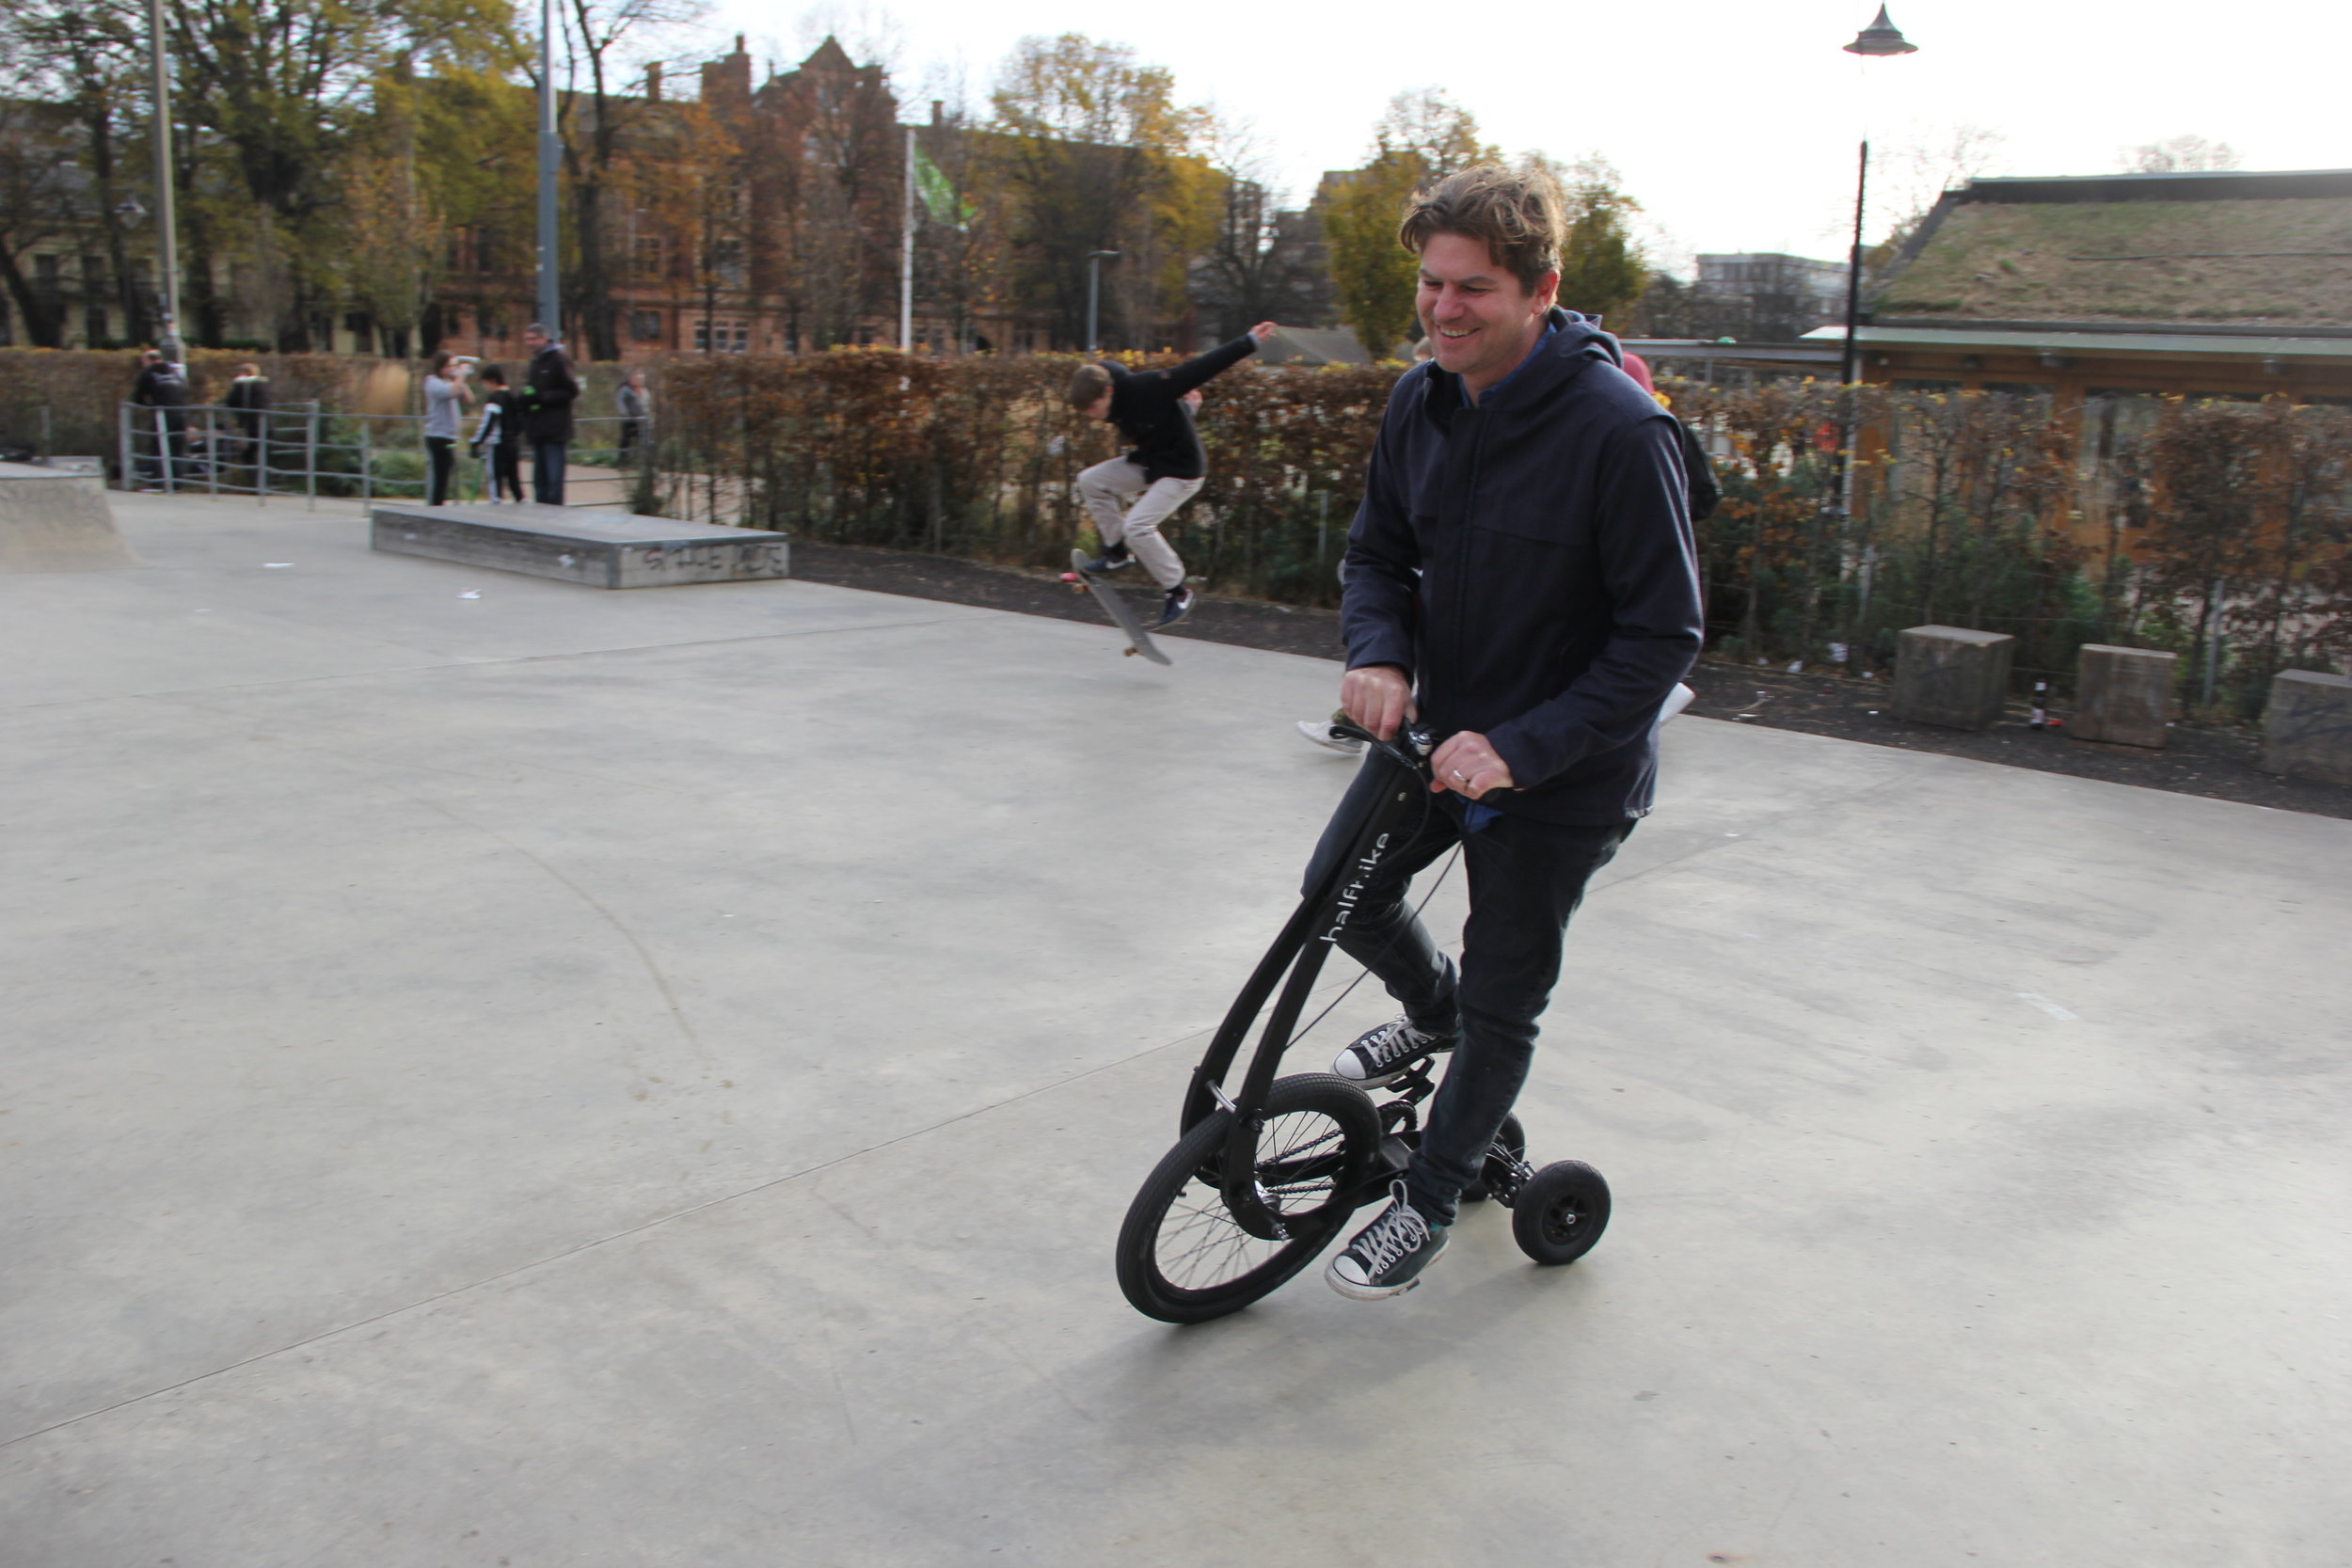 Robbie gets to grips with Halfbike at The Level, Brighton's skate park